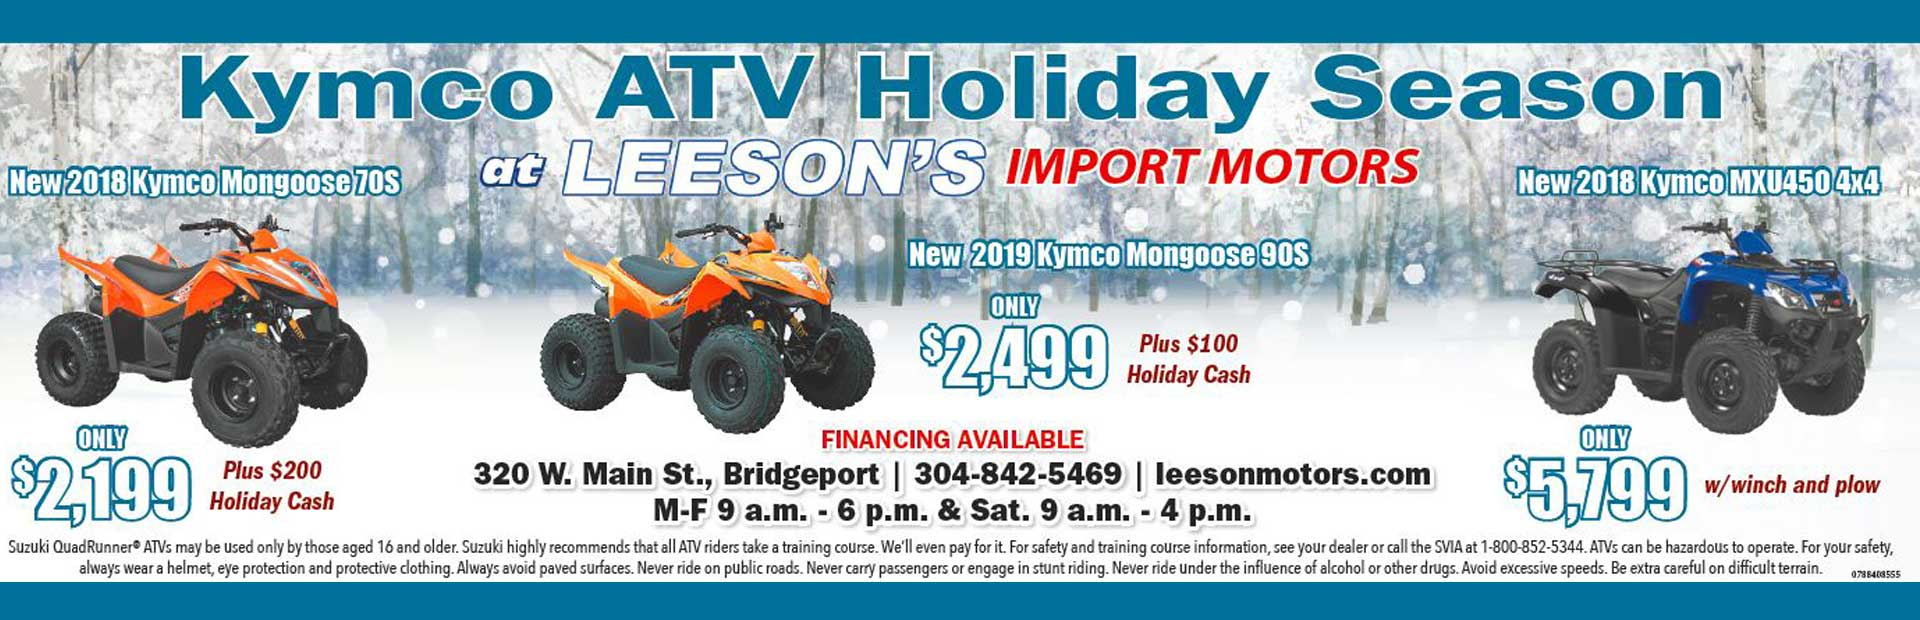 Kymco ATV Holiday Season